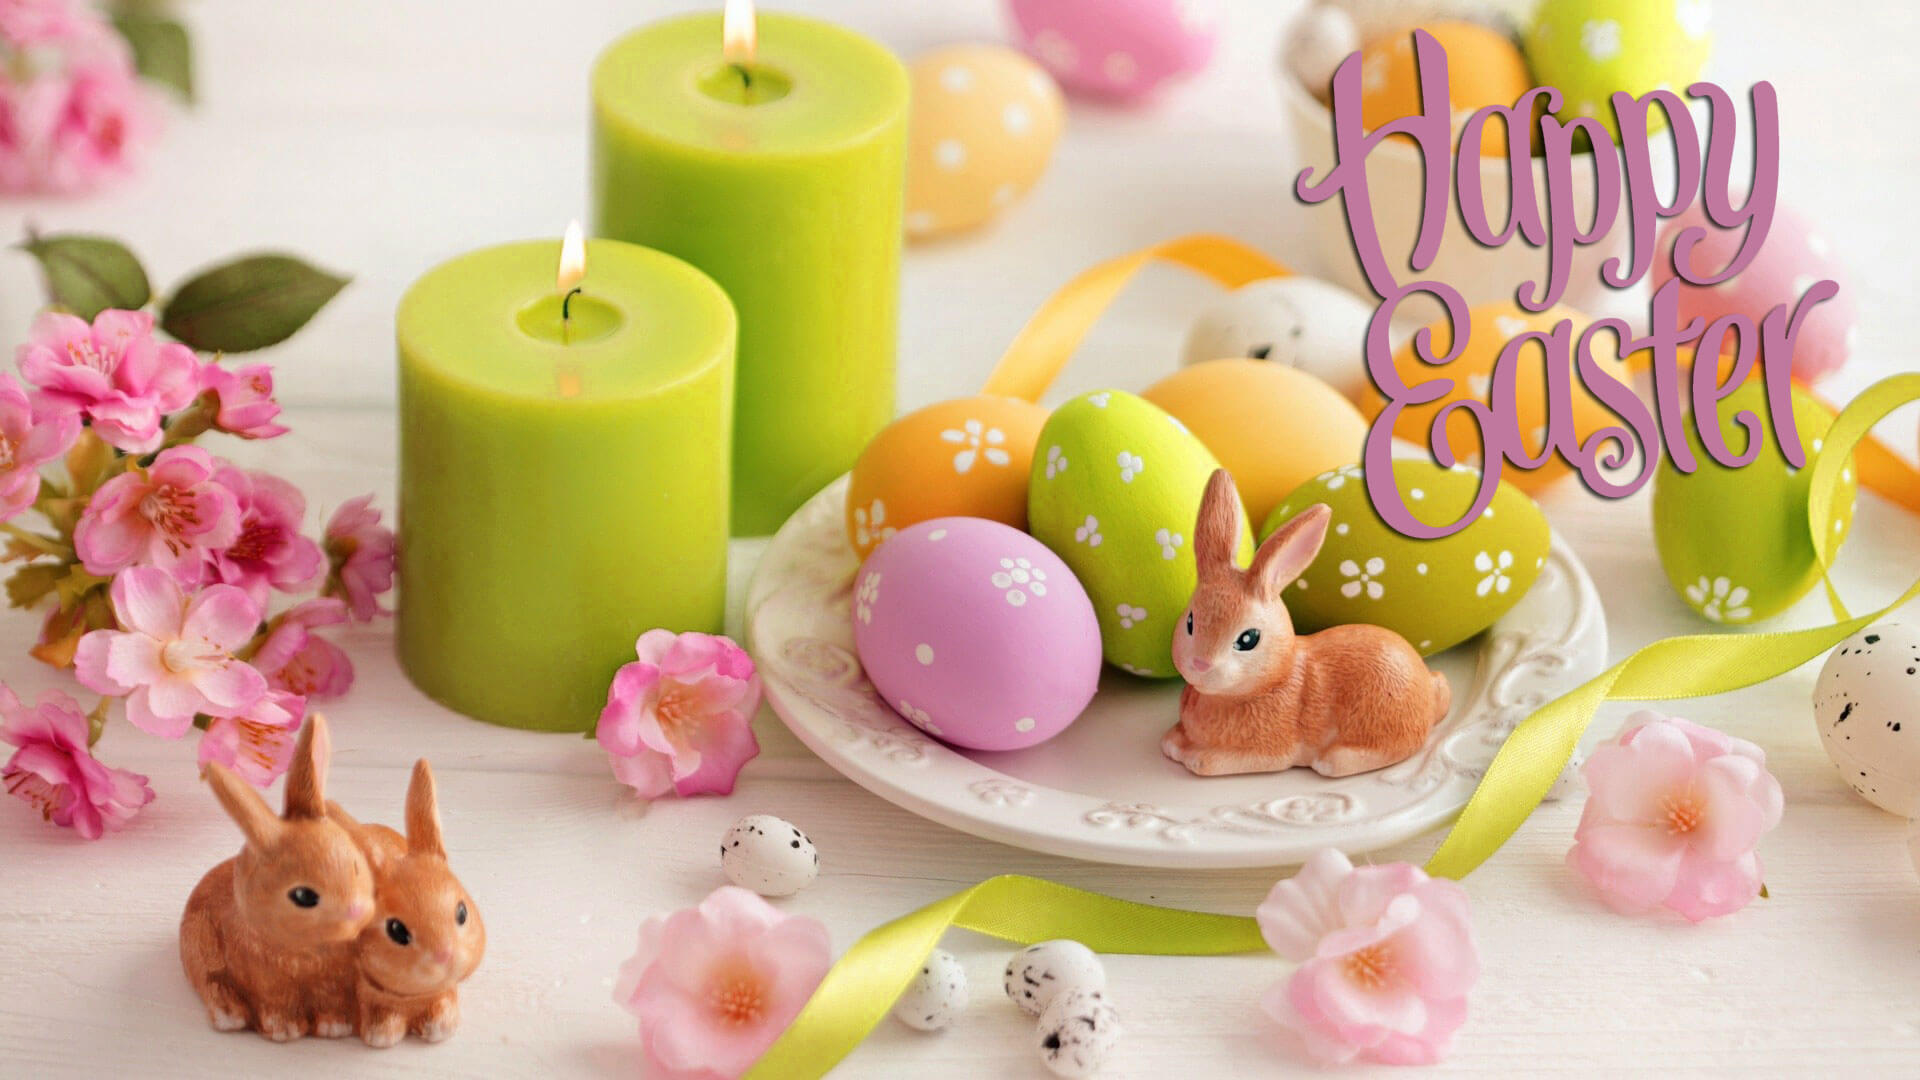 happy easter eggs bunny candle dinner cute hd wallpaper